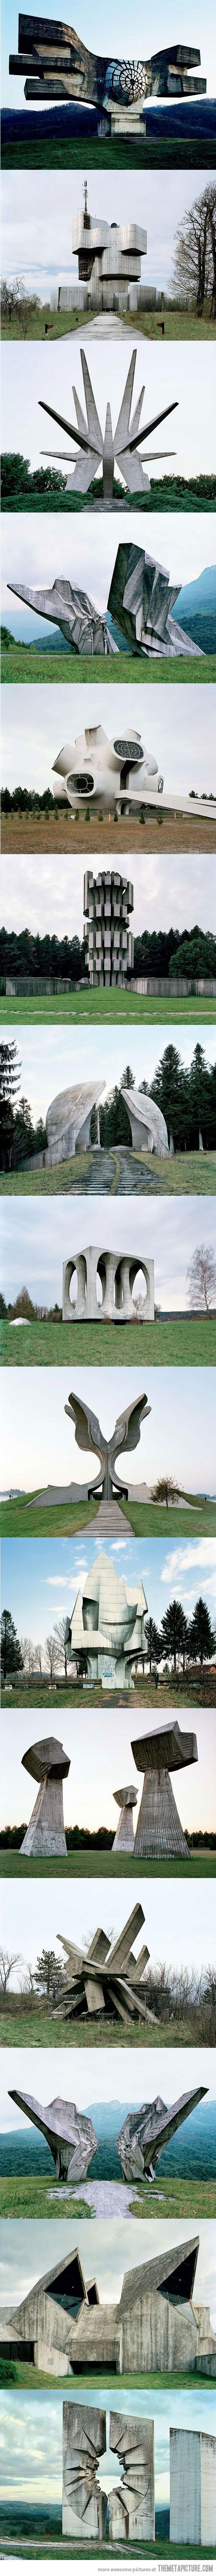 Abandoned monuments that look like they're from the future